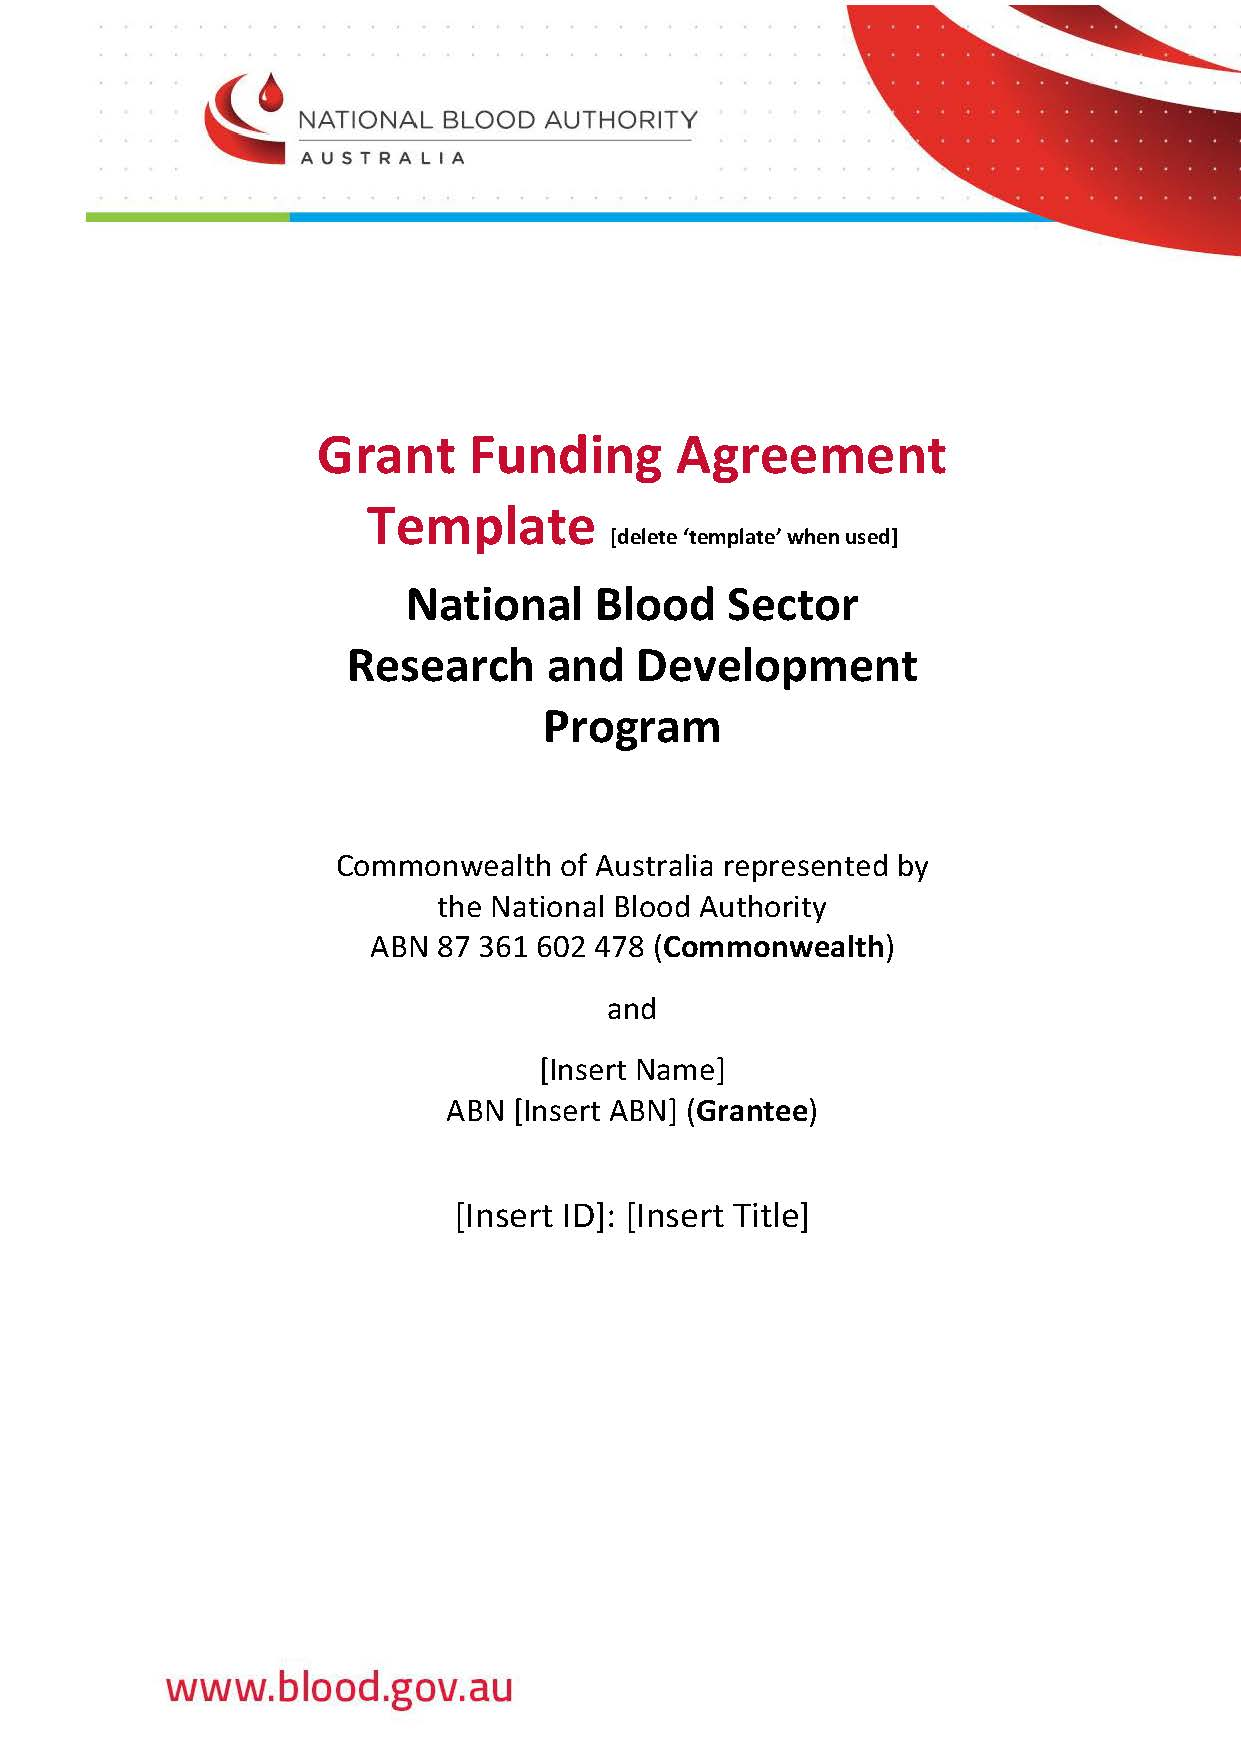 Grant Funding Agreement for Project and Seed grants